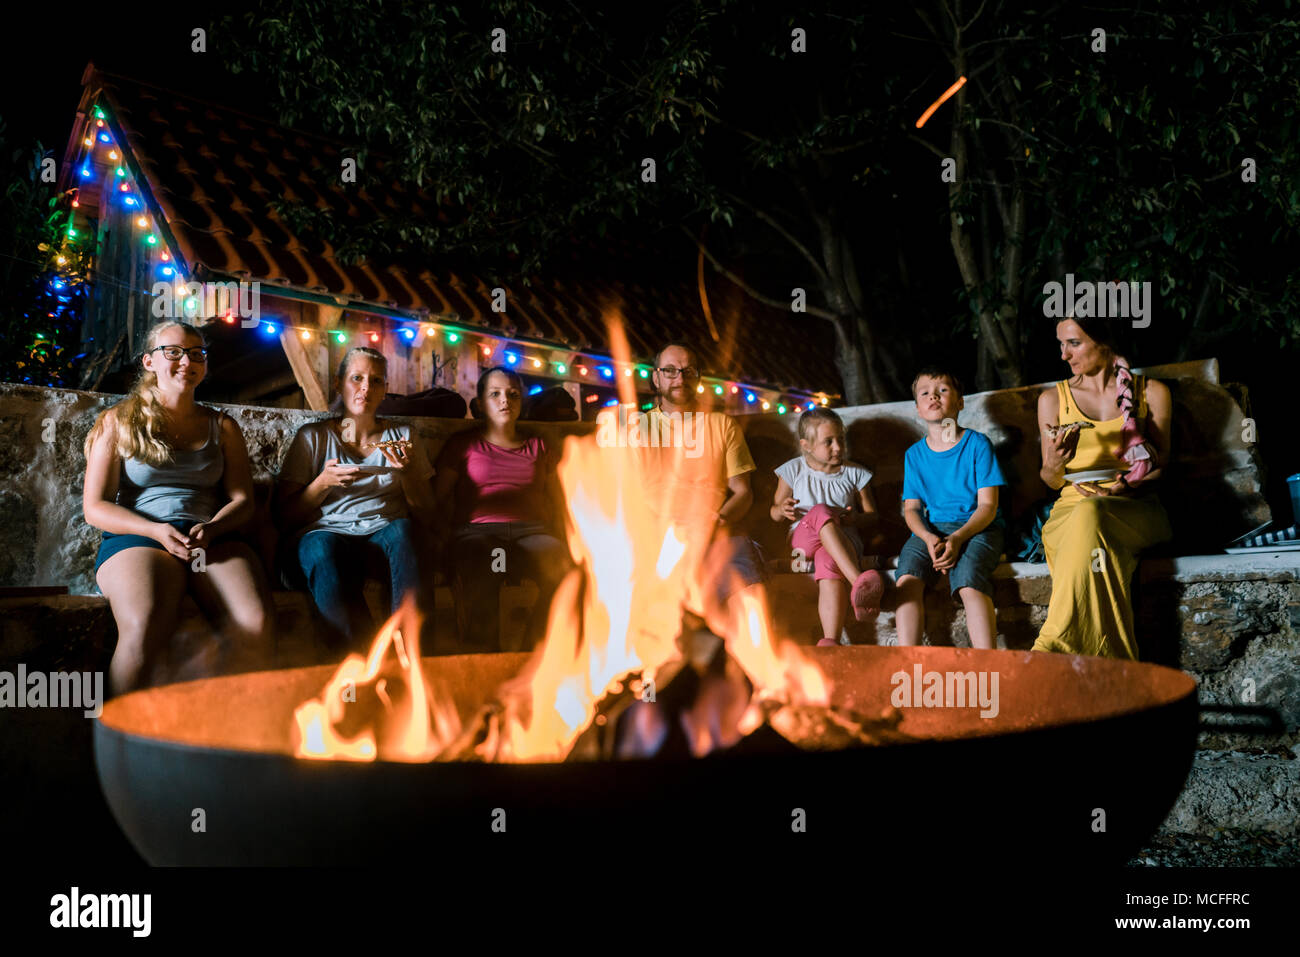 Family having a barbeque party sitting in front of fire - Stock Image